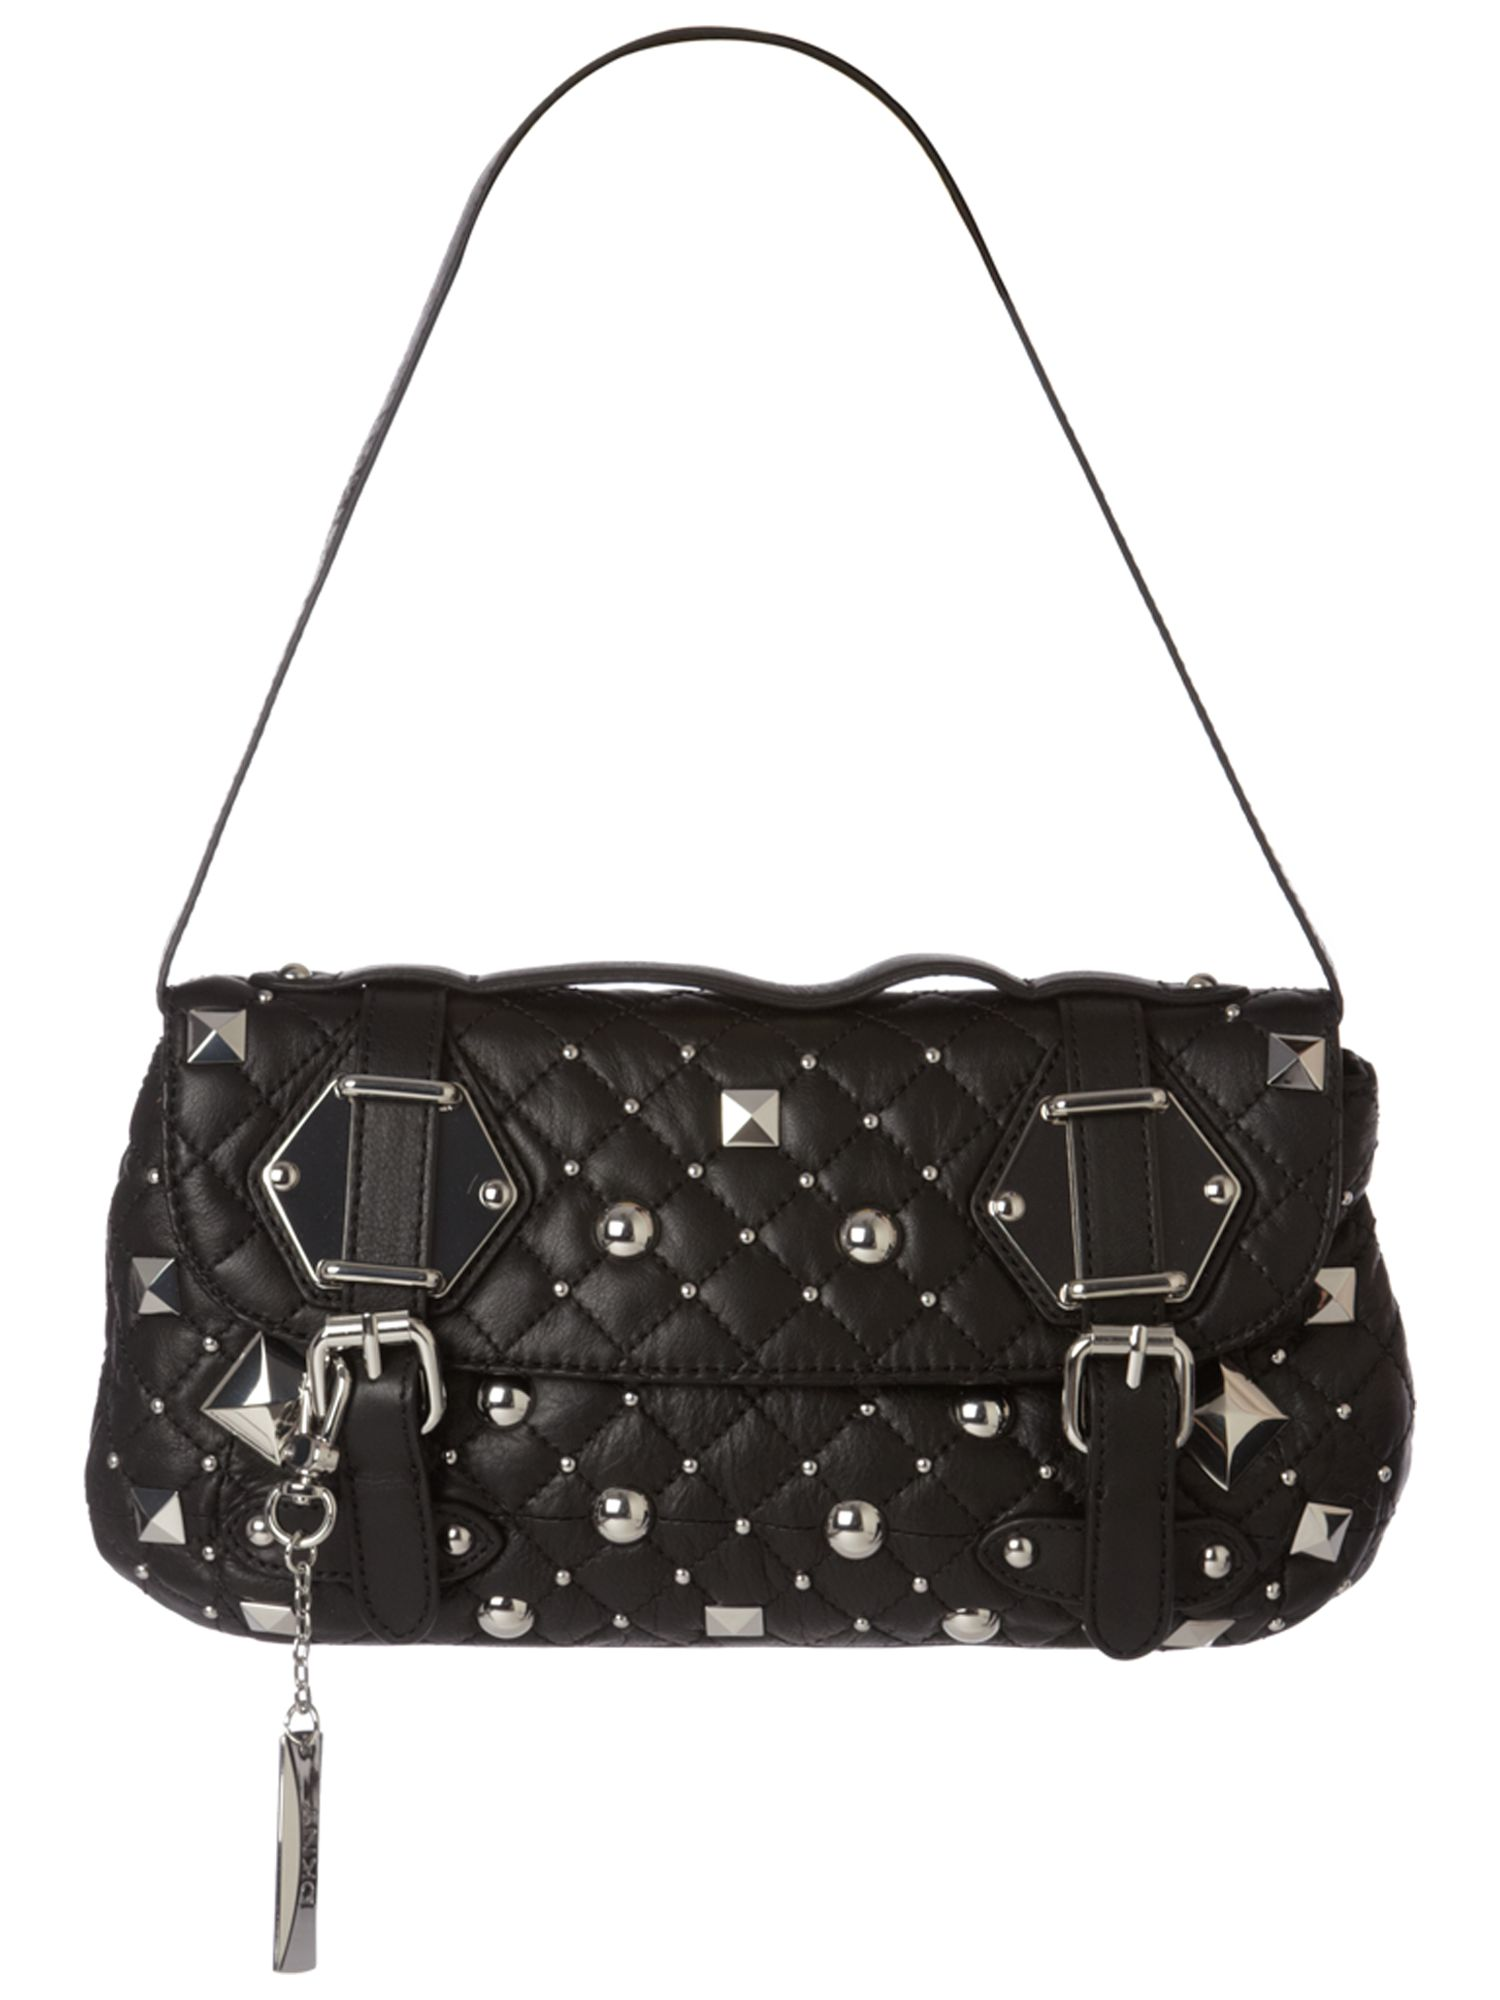 DKNY Quilted Stud medium leather hobo product image